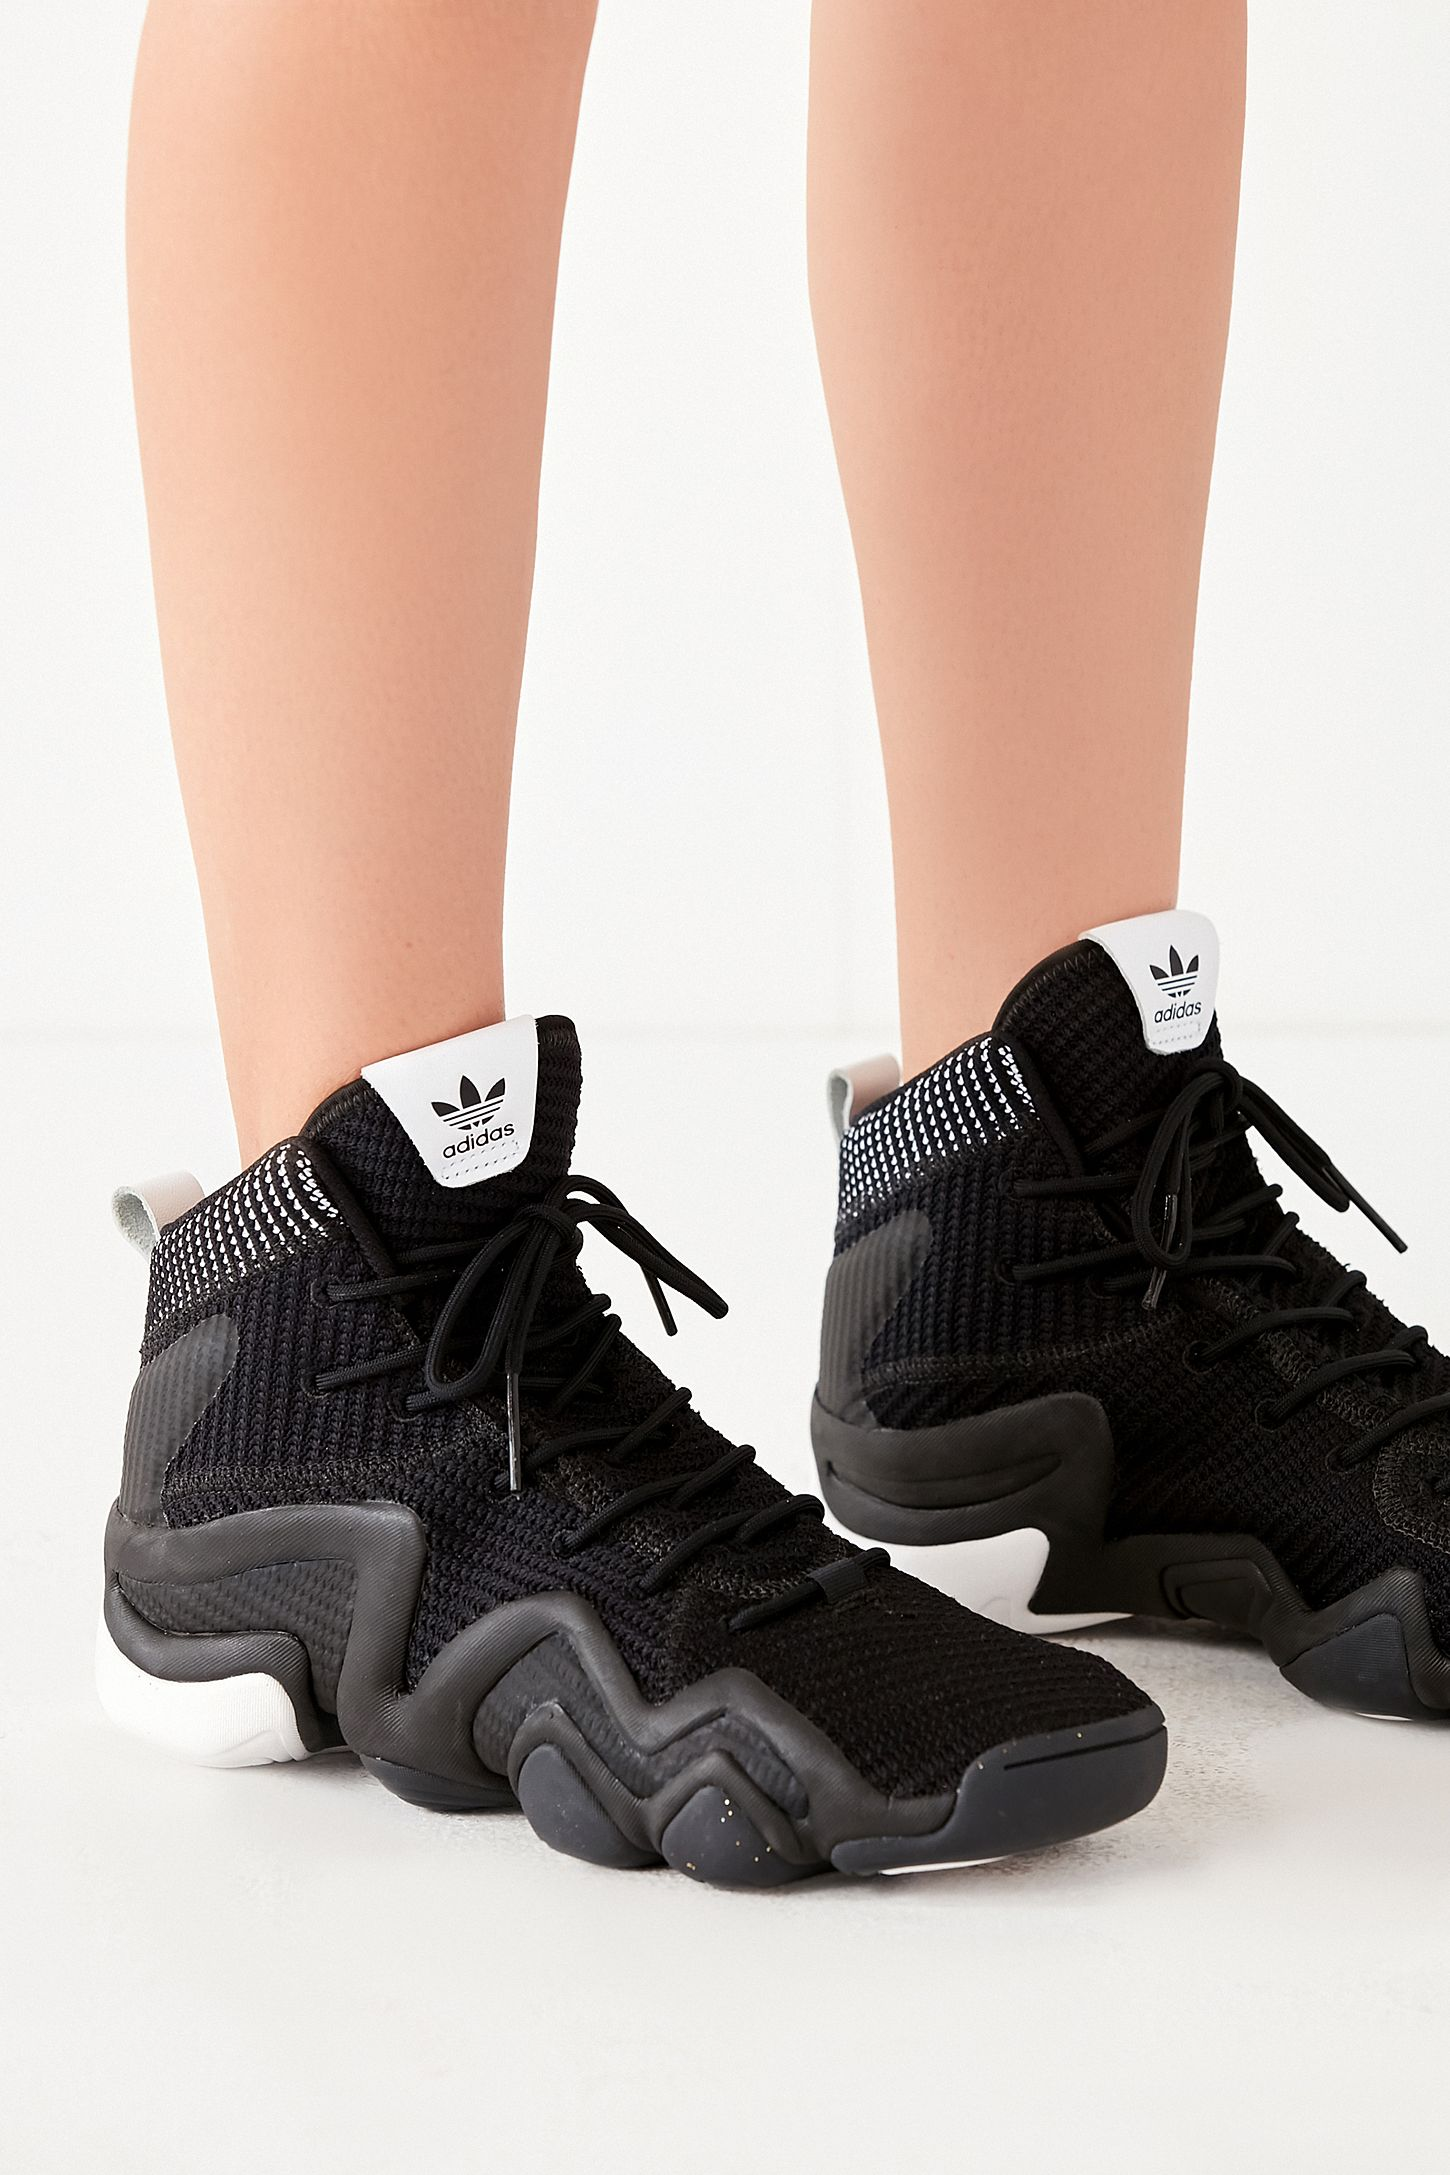 check out 015ed a6f54 adidas Originals Crazy 8 ADV Primeknit Sneaker   Urban Outfitters